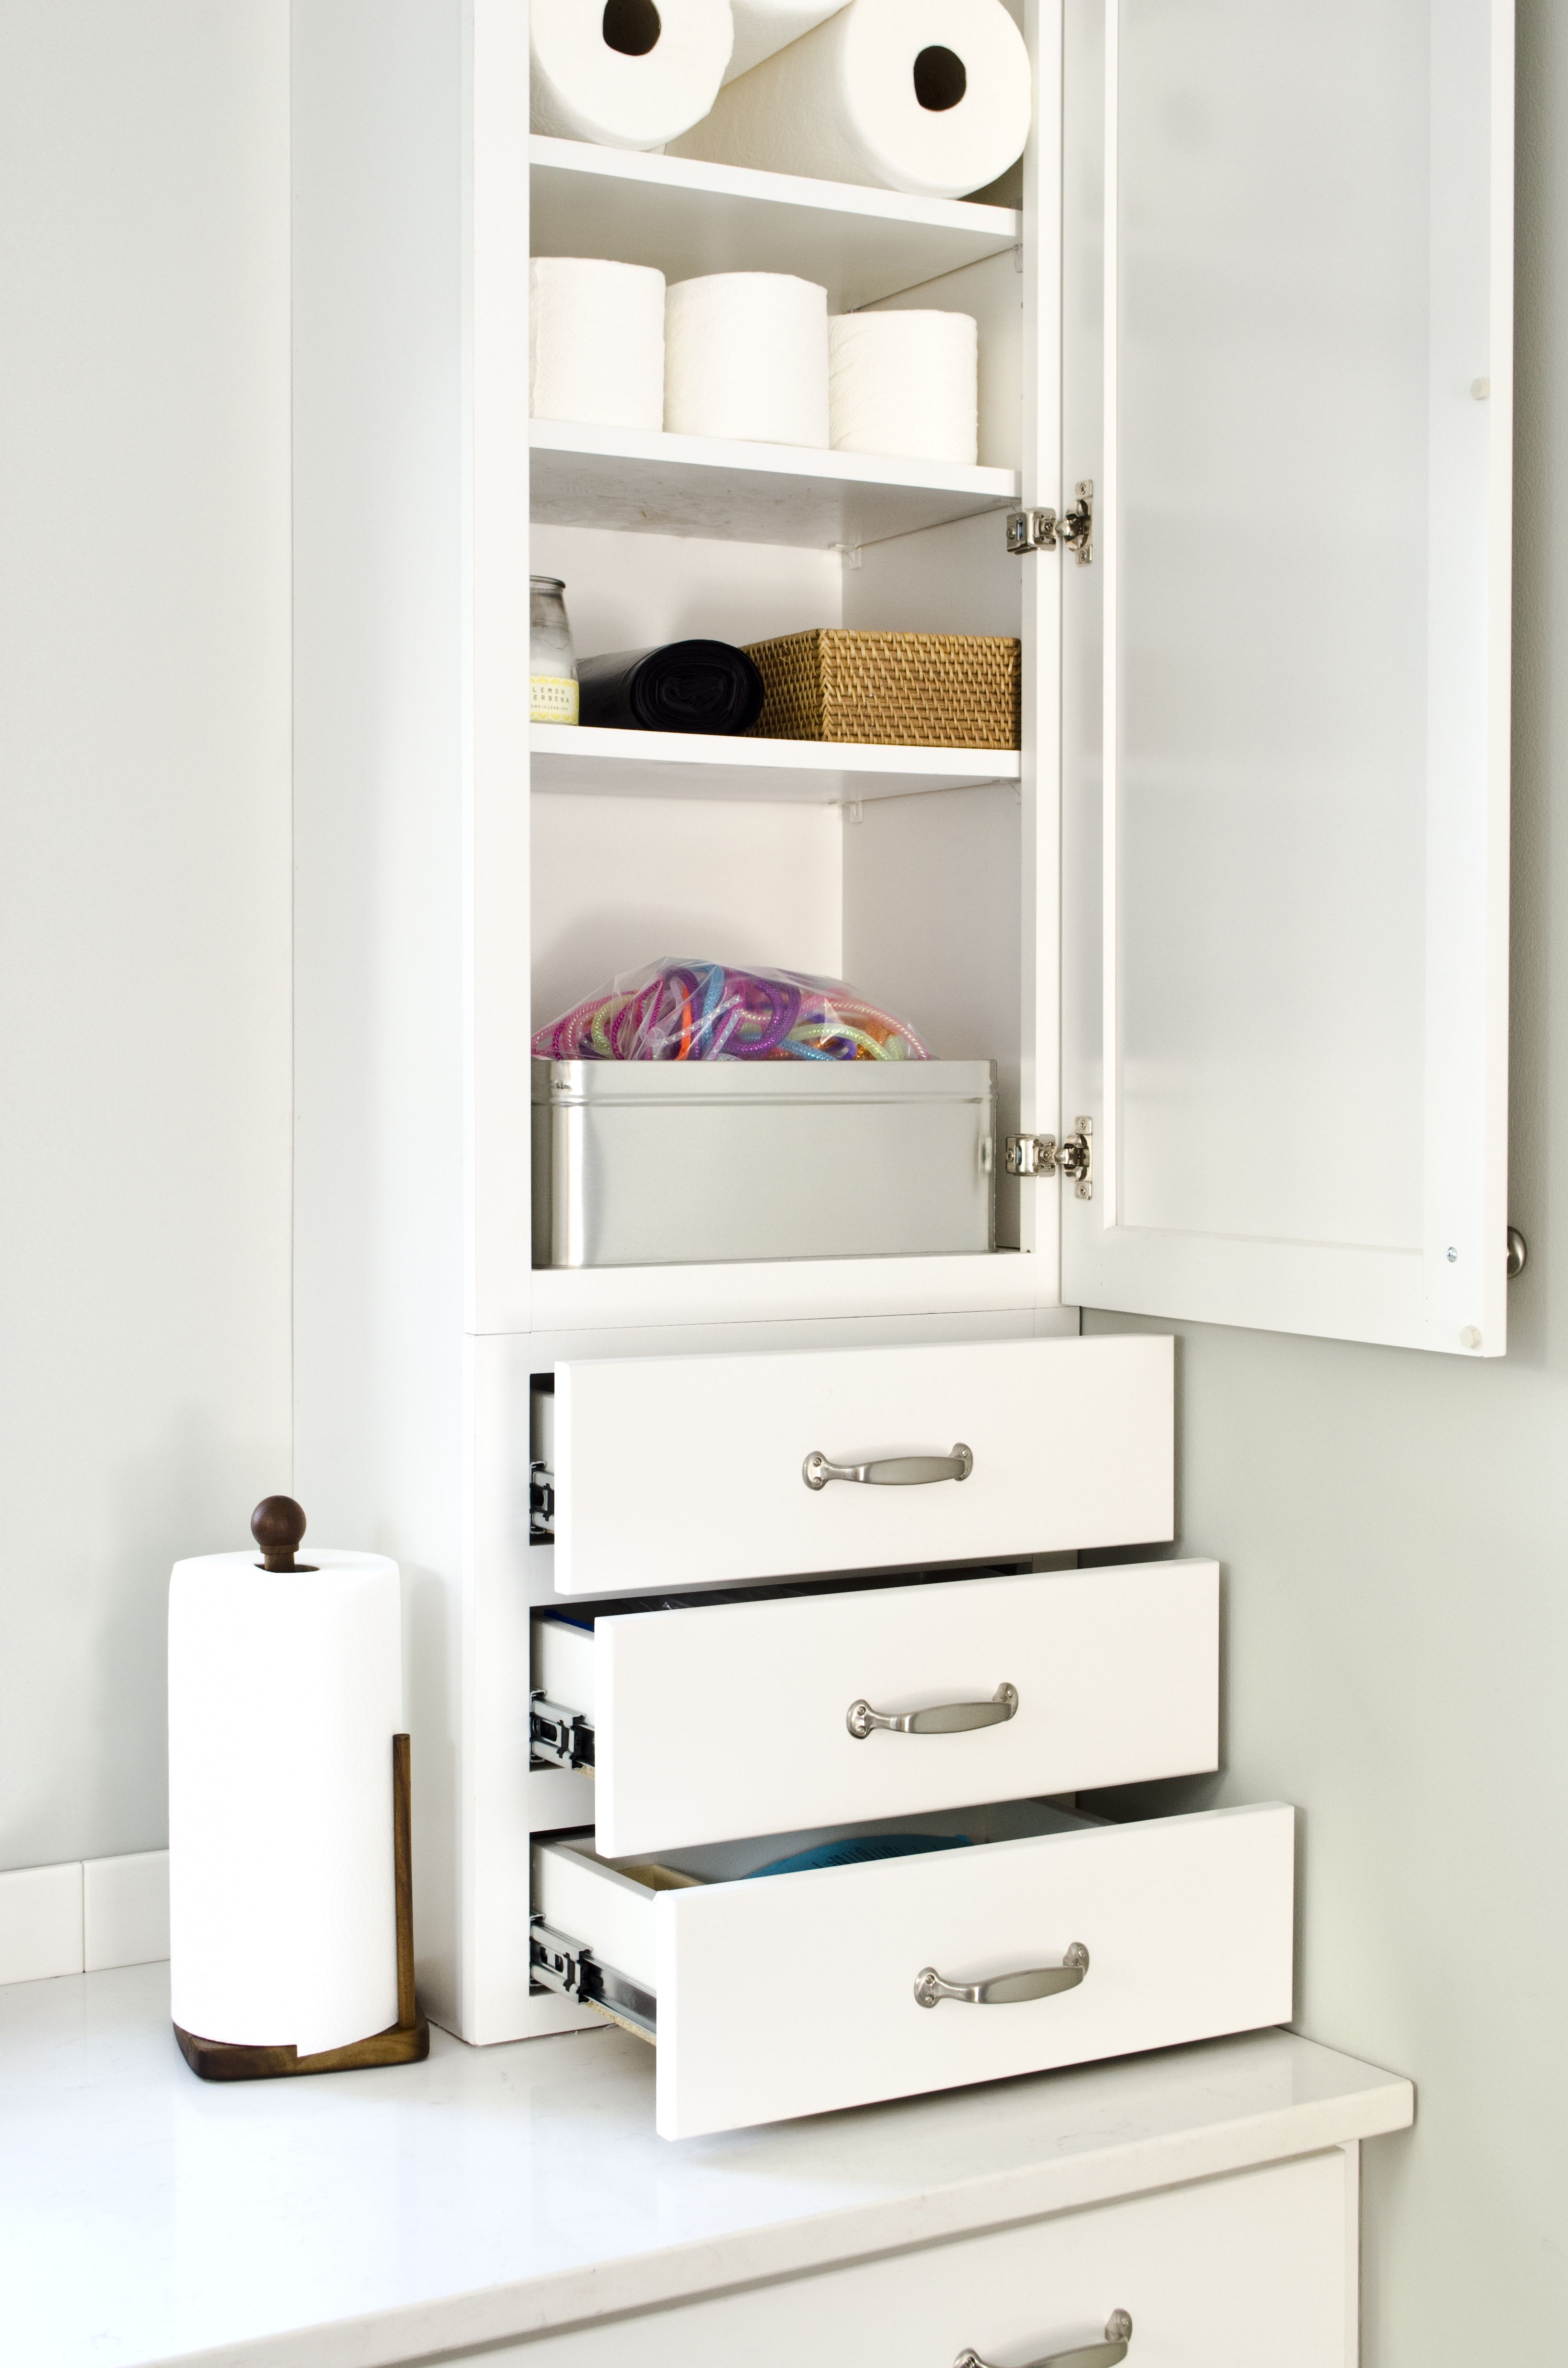 Aristokraft Kitchen Cabinets Stores Denver This Drawer Stack And Wall Cabinet Combination By